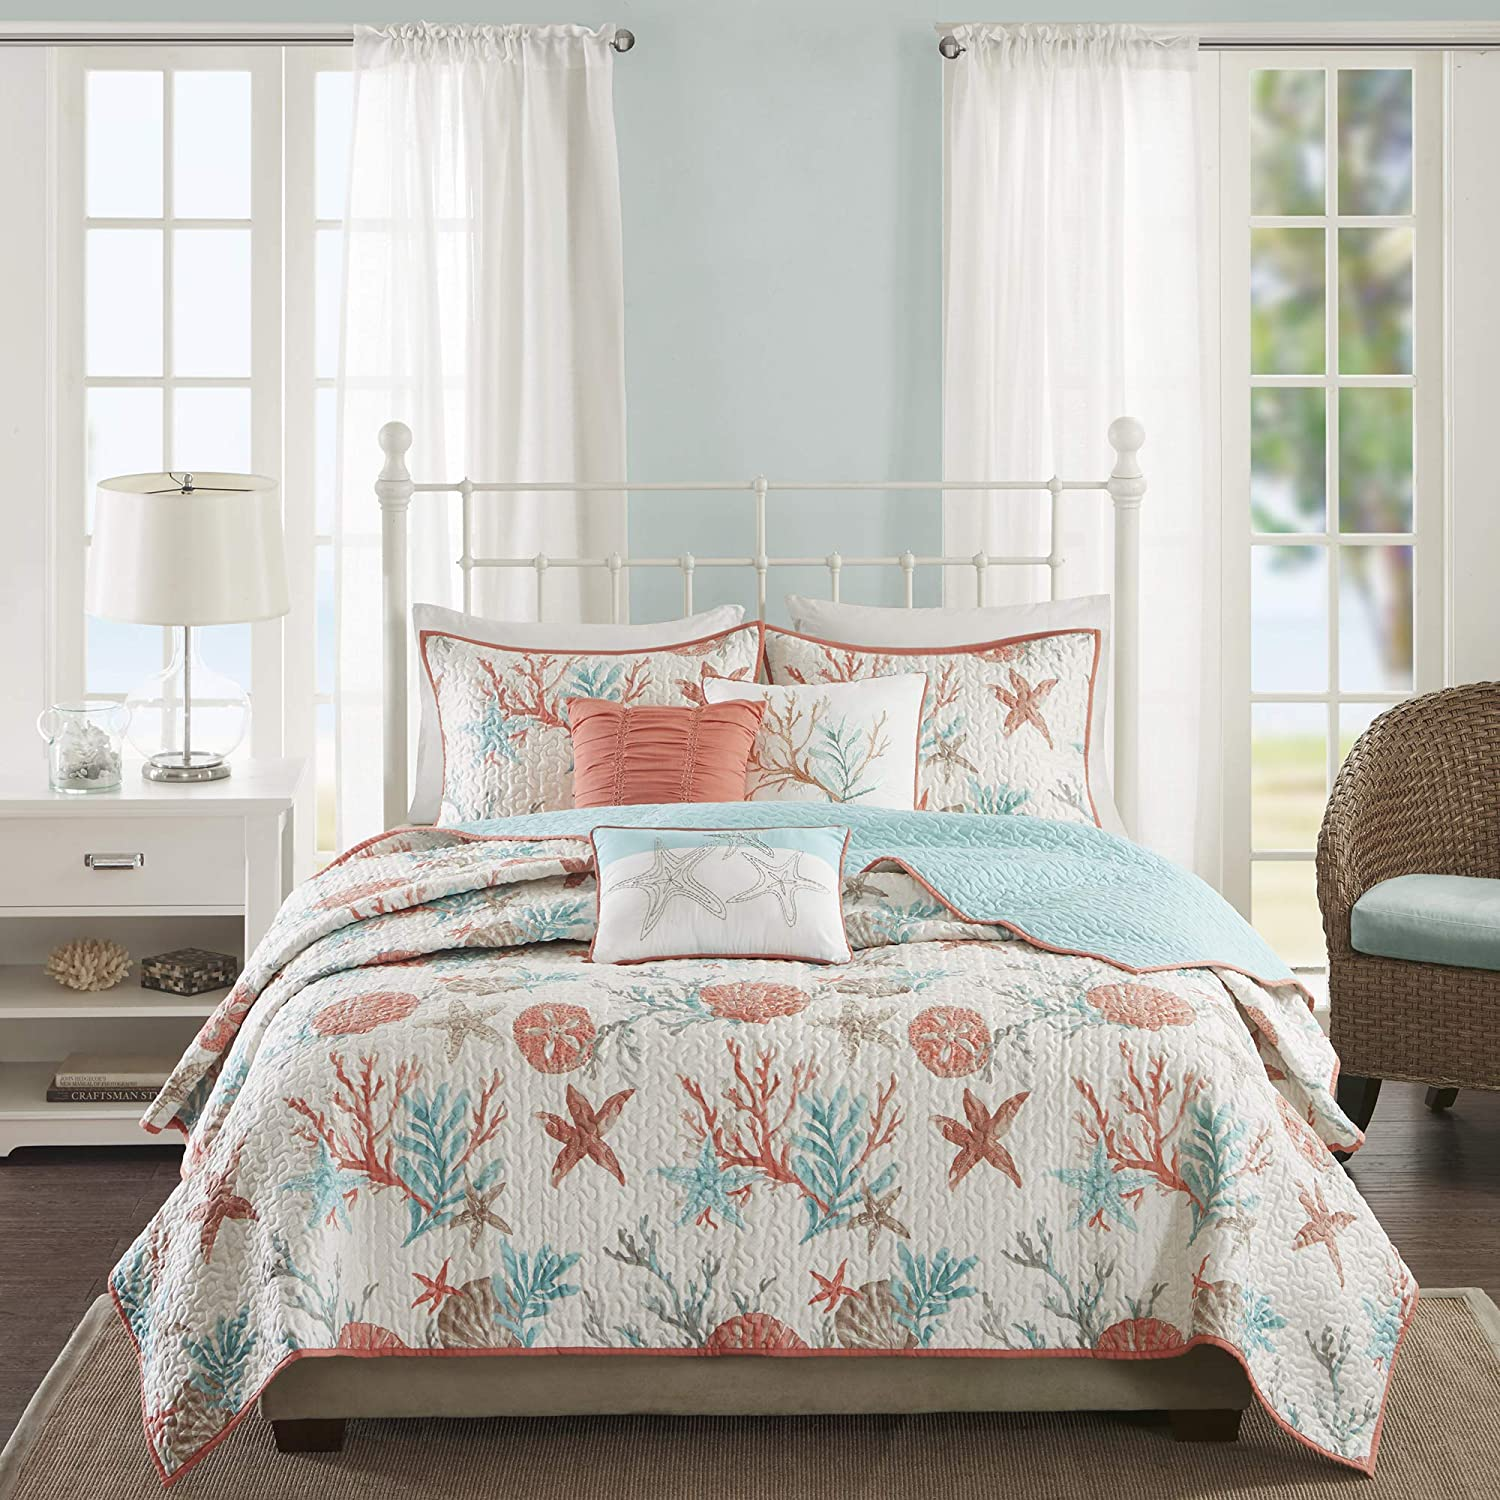 """Madison Park Quilt Cottage Coastal Design All Season, Breathable Coverlet Bedspread Lightweight Bedding Set, Matching Shams, Decorative Pillow, King/Cal King(104""""x94""""), Pebble Beach, Coral, 6 Piece"""